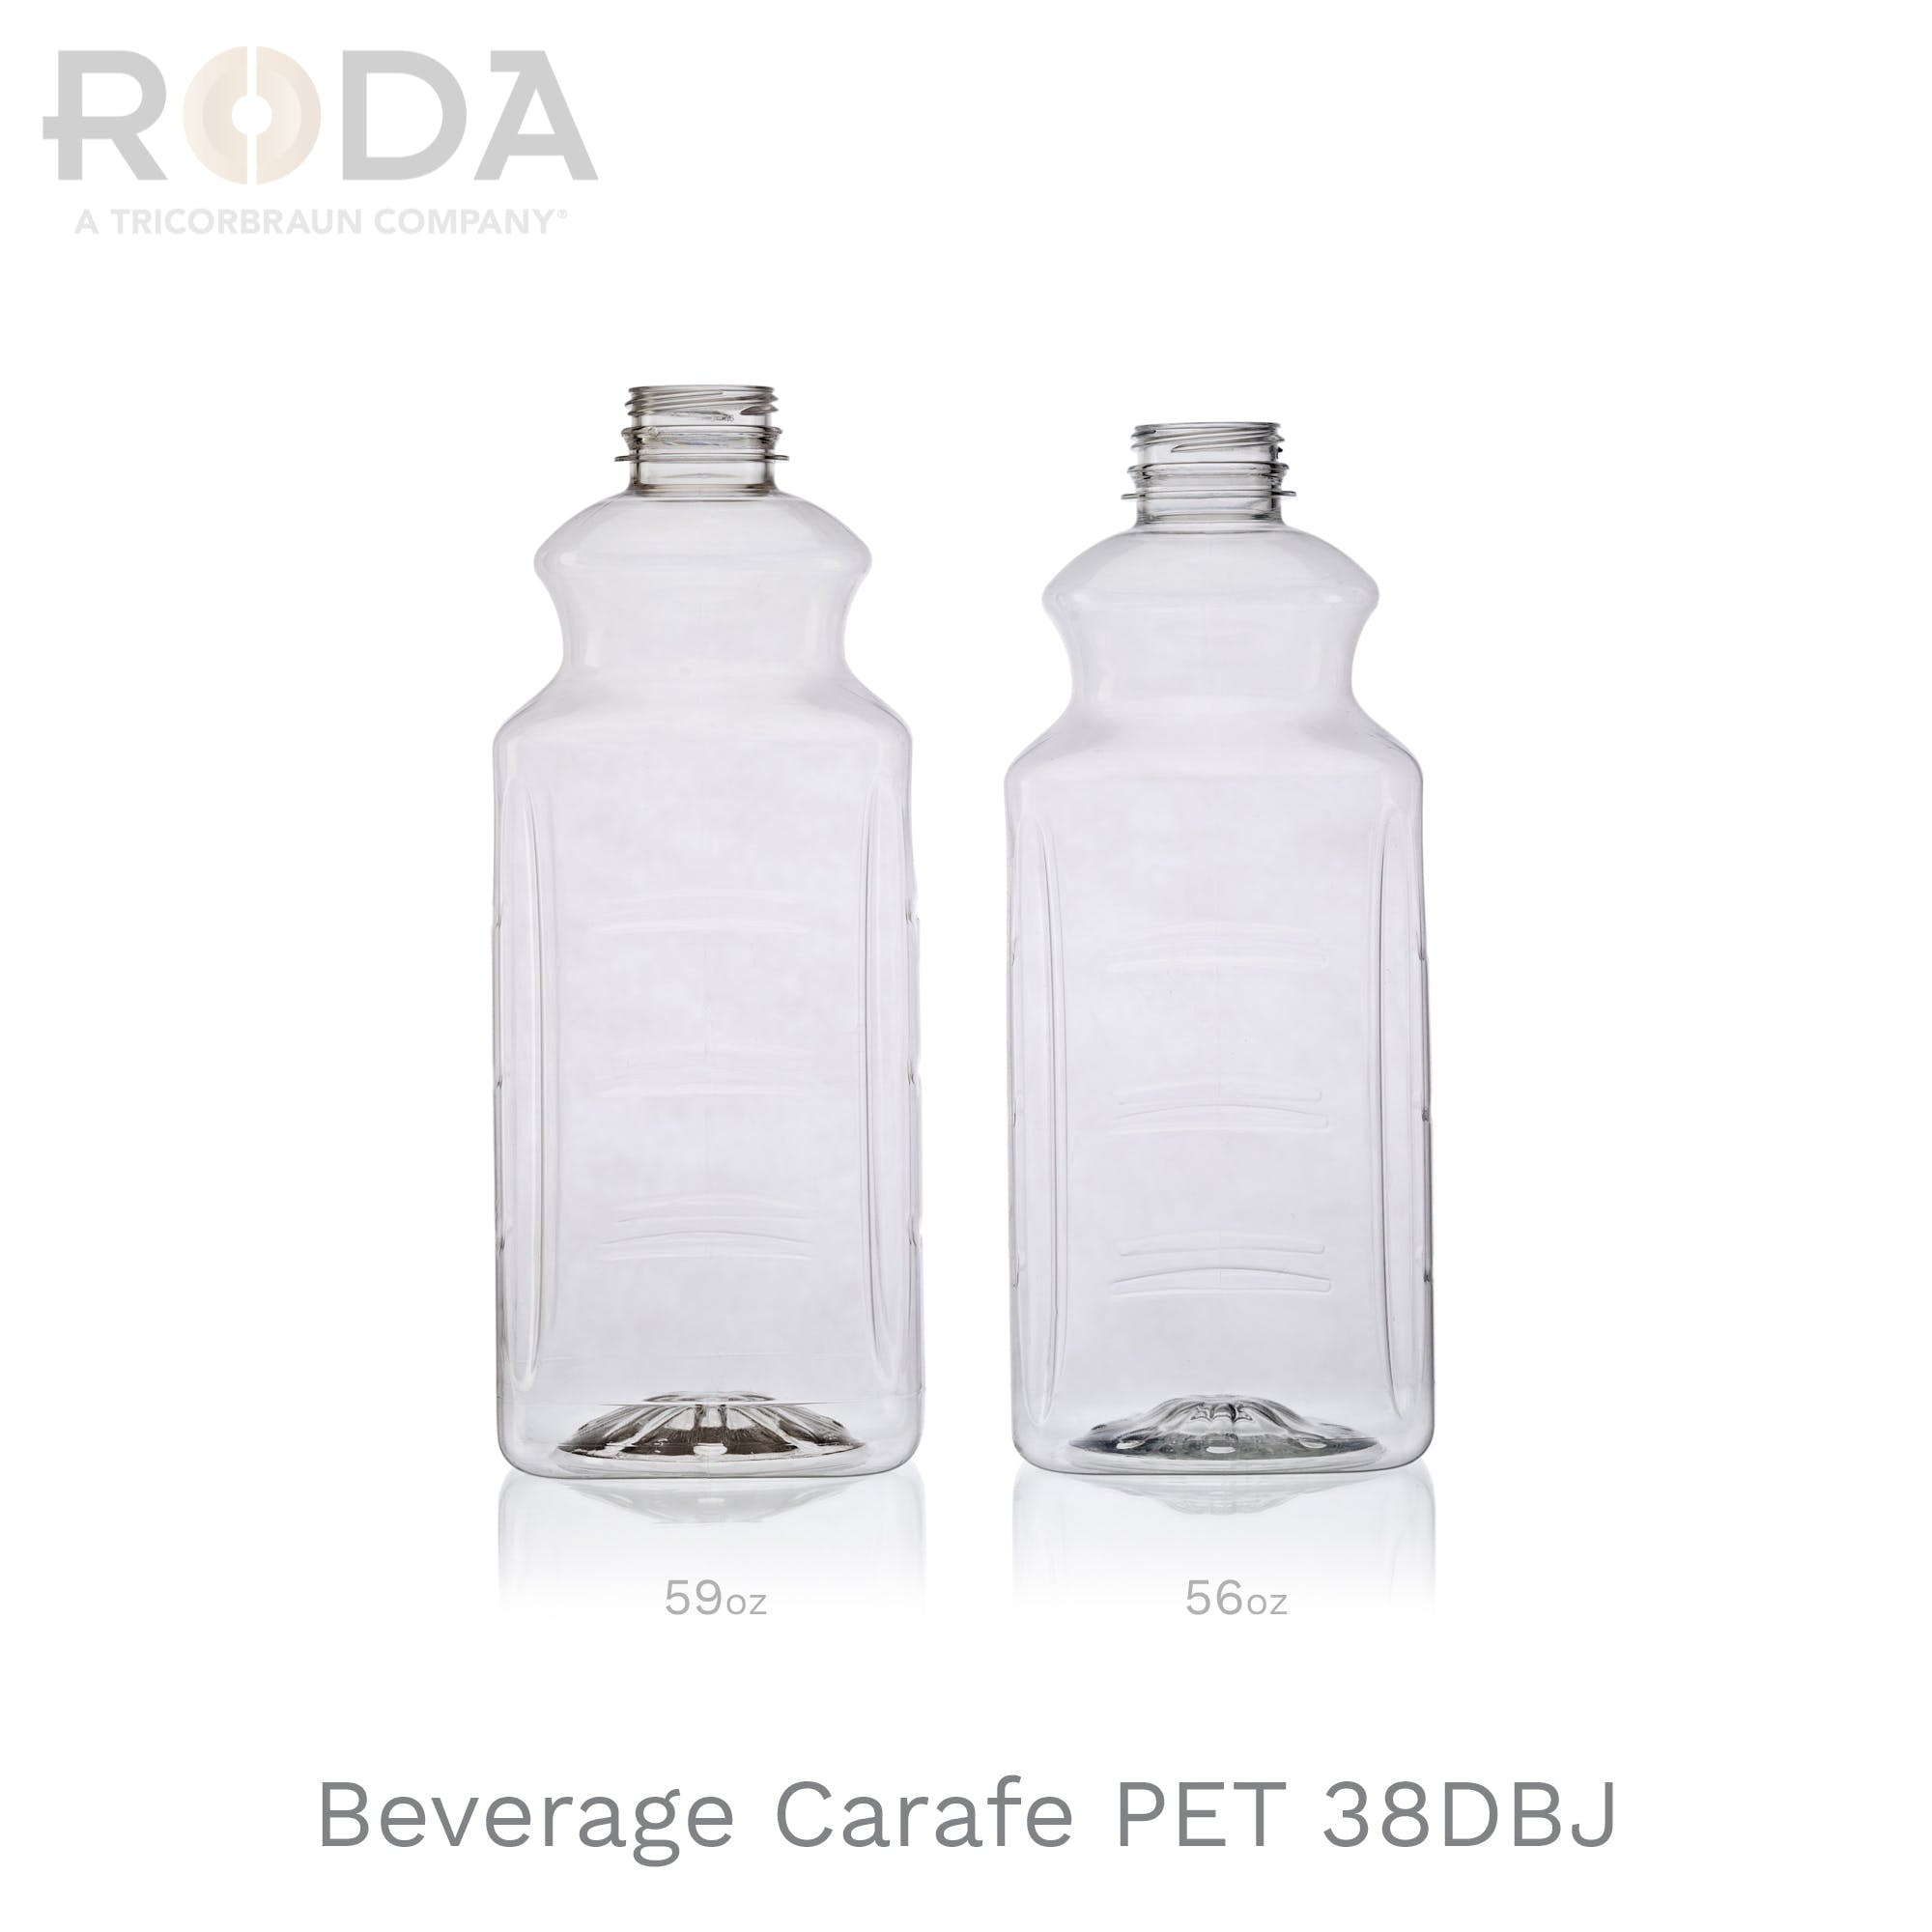 Beverage Carafe PET 38DBJ